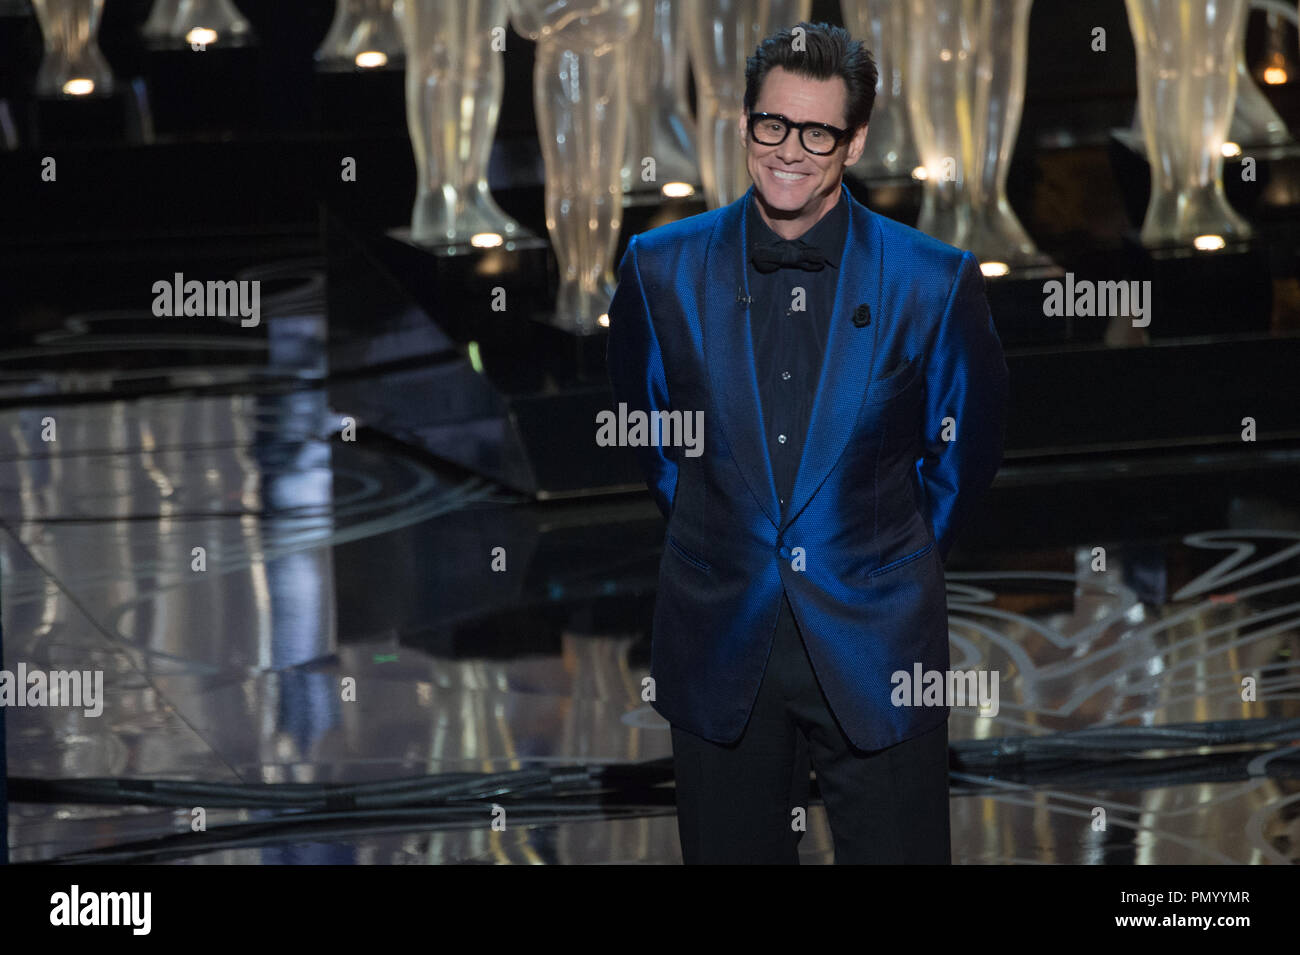 Presenter Jim Carrey on stage during the live ABC Telecast of The 86th Oscars® at the Dolby® Theatre on March 2, 2014 in Hollywood, CA.  File Reference # 32268_563  For Editorial Use Only -  All Rights Reserved - Stock Image